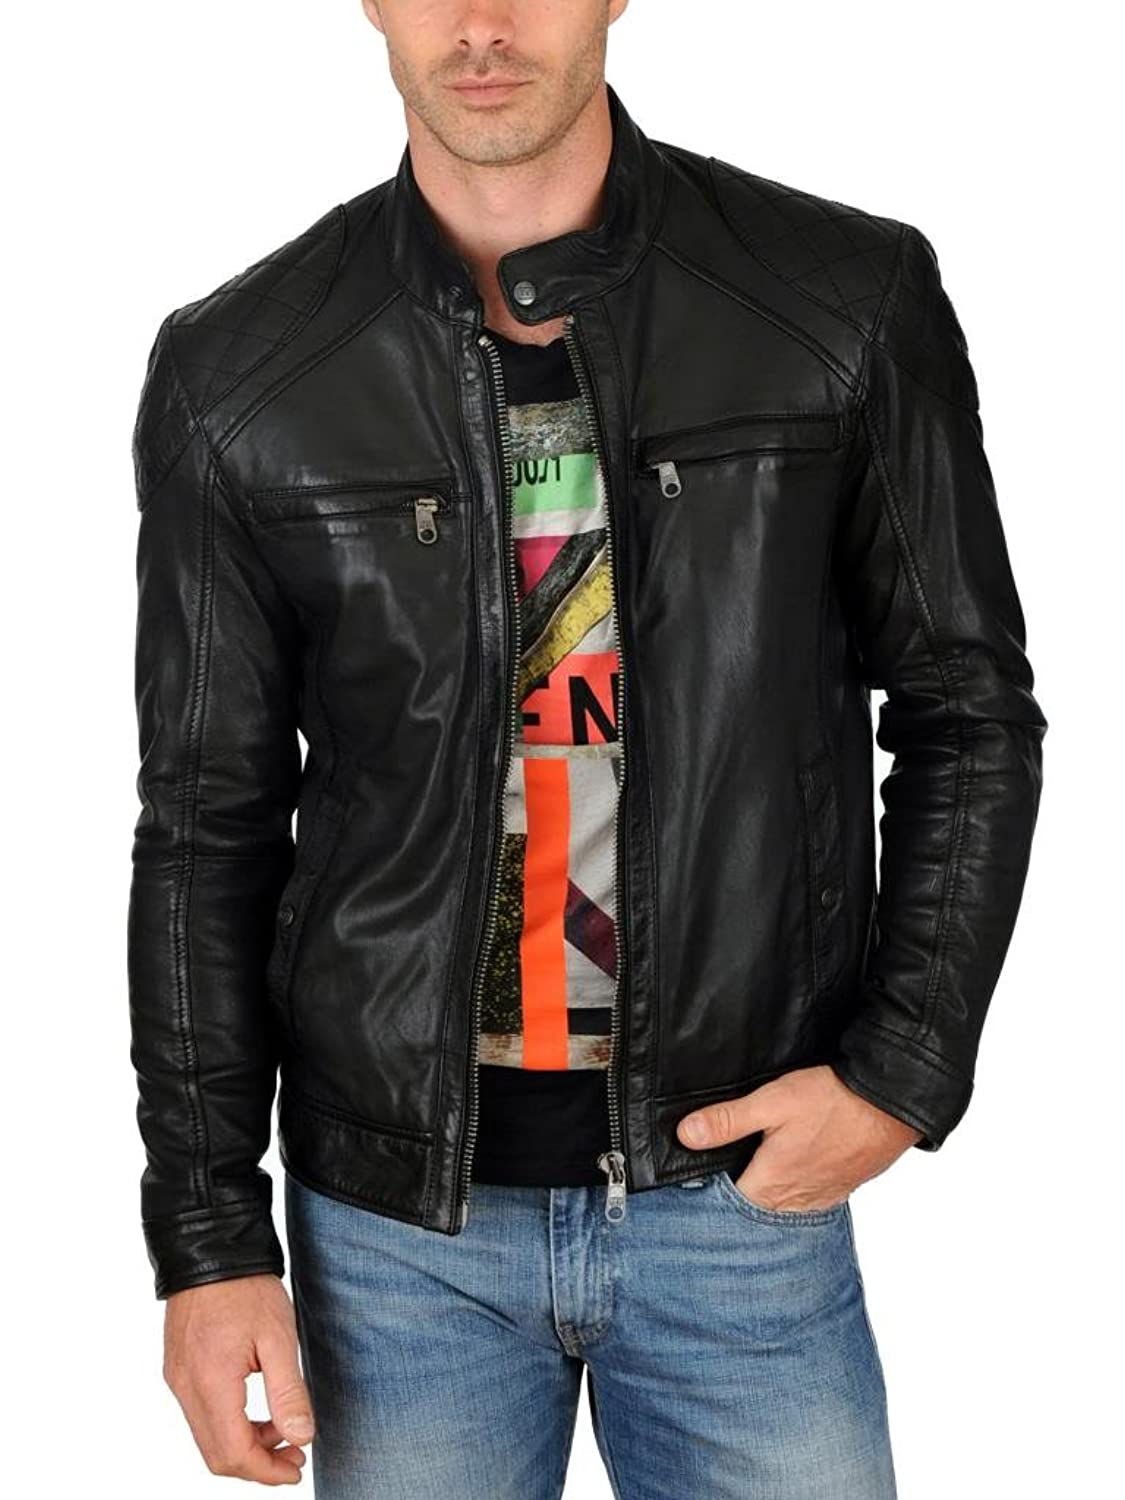 Men Leather Jacket Biker Motorcycle Coat Slim Fit Outwear Jackets AUK091